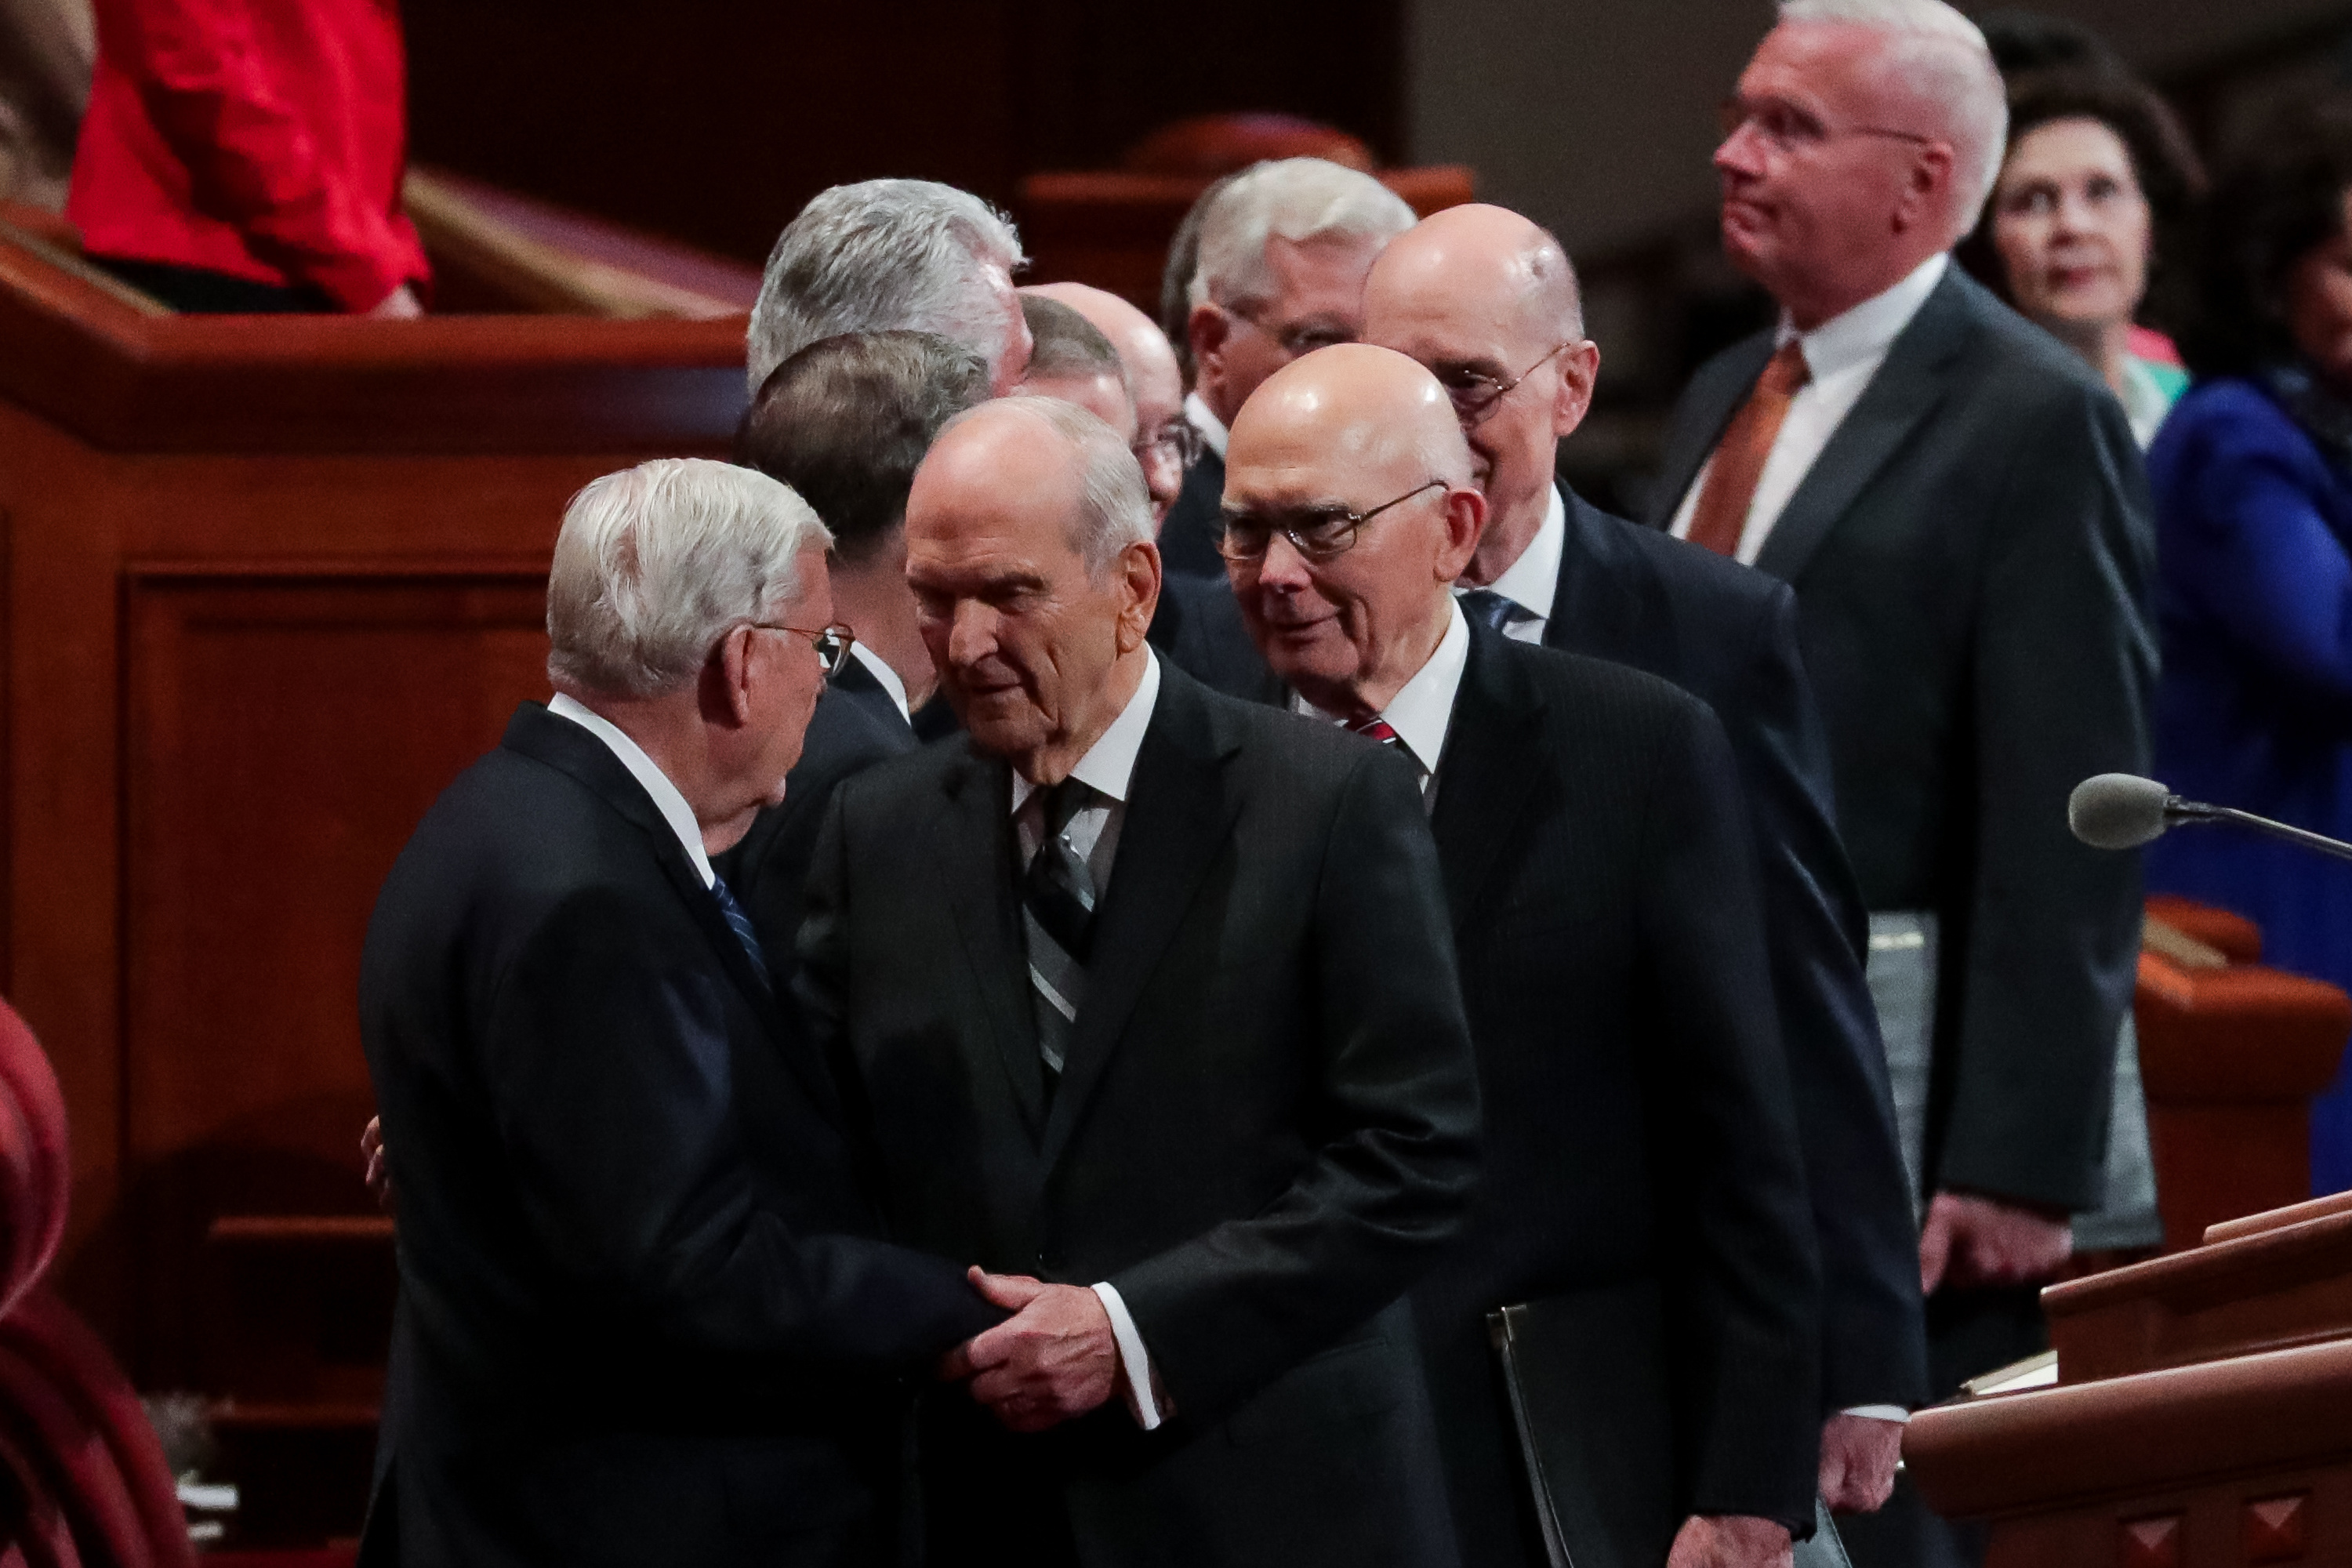 President Russell M. Nelson, center, embraces President M. Russell Ballard, acting president of the Quorum of the Twelve Apostles, left, at the start of the Saturday morning session of the 188th Semiannual General Conference of The Church of Jesus Christ of Latter-day Saints in the Conference Center in Salt Lake City on Saturday, Oct. 6, 2018.